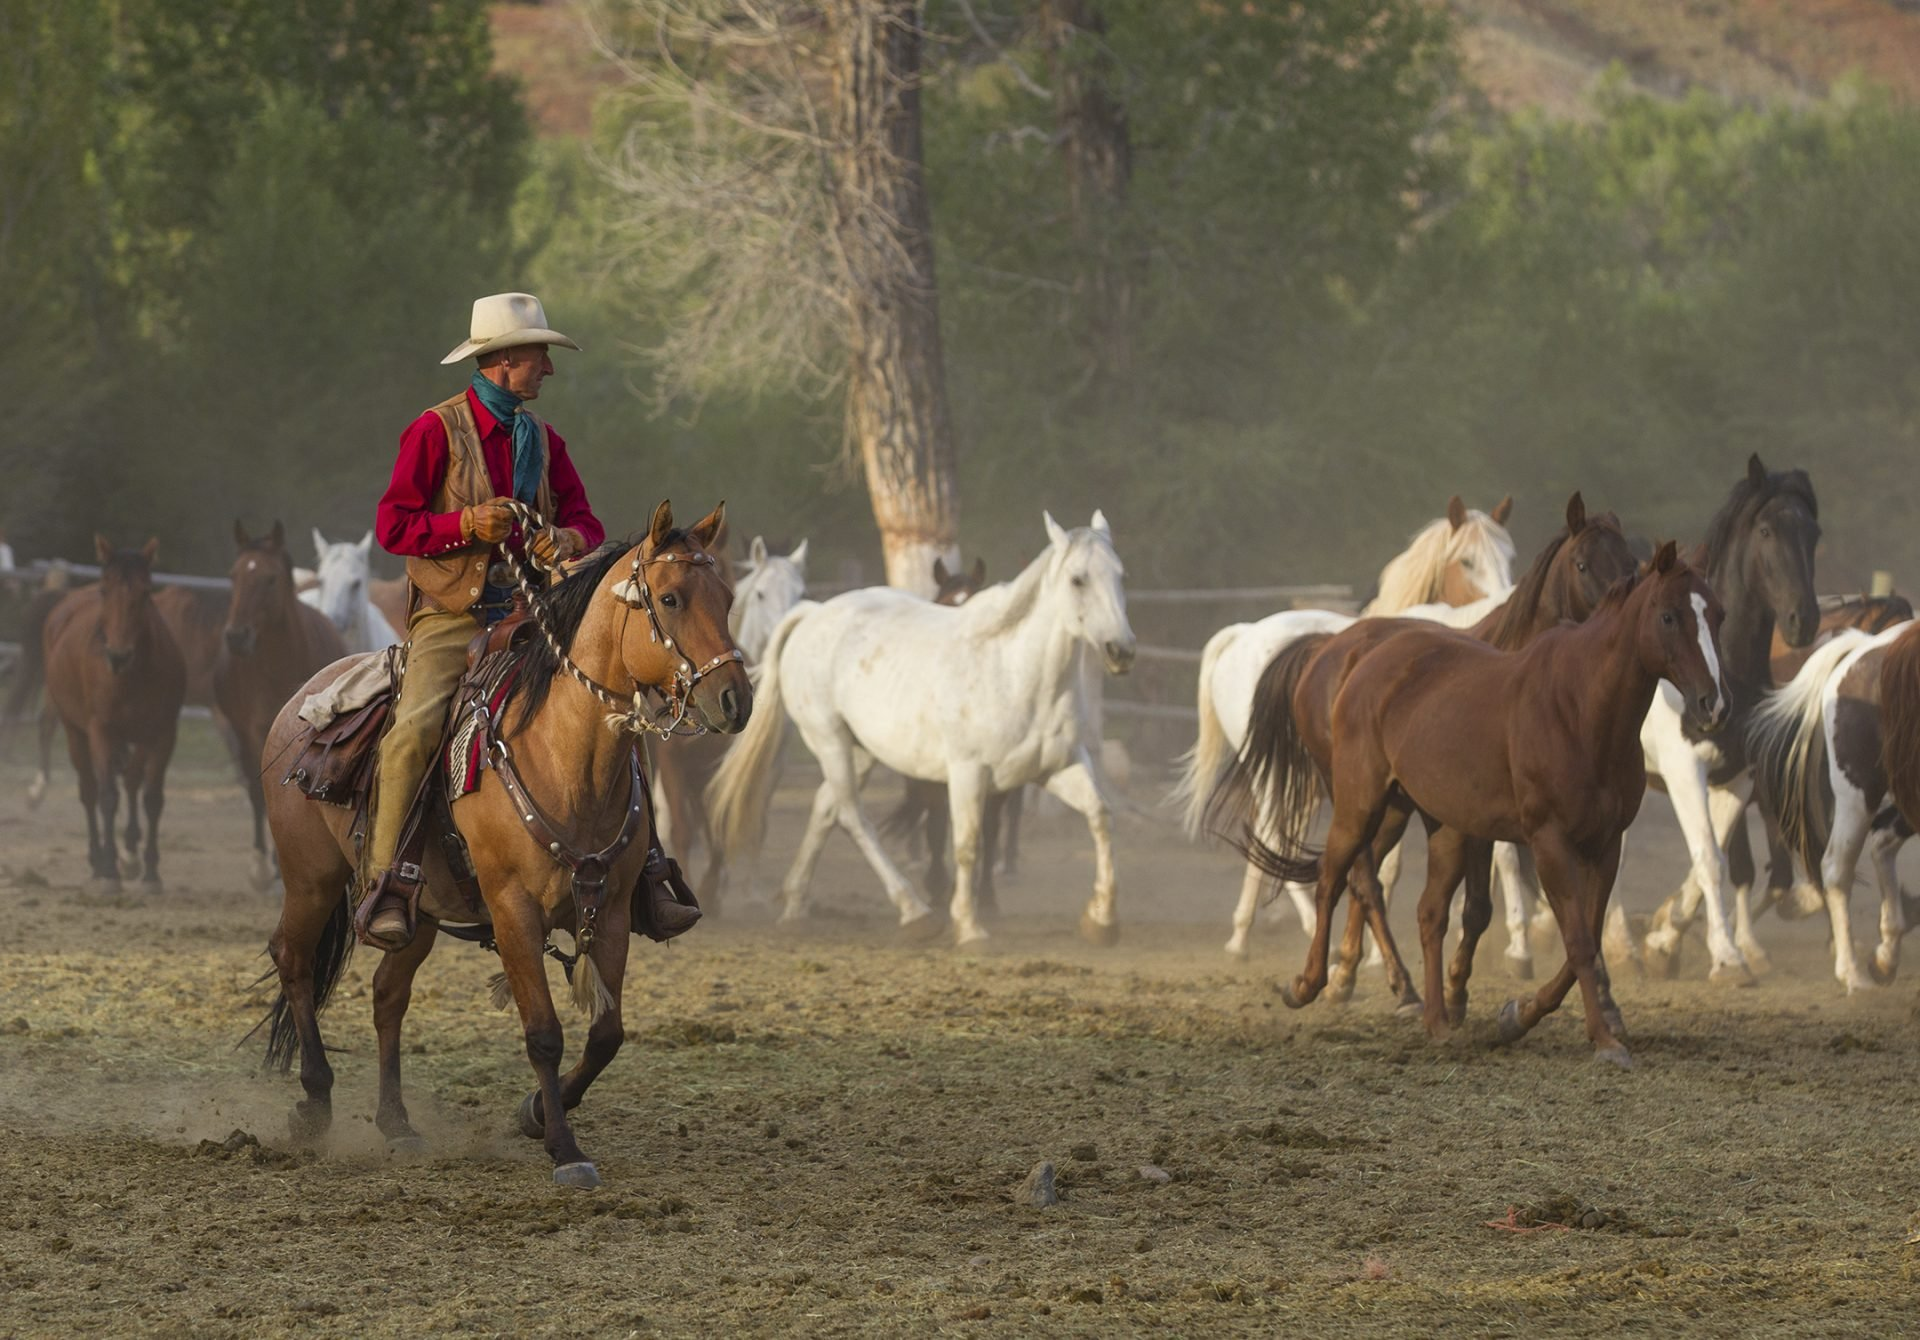 Cowboy on horseback rounding up a herd of horses - Lazy L&B Guest Ranch Wyoming